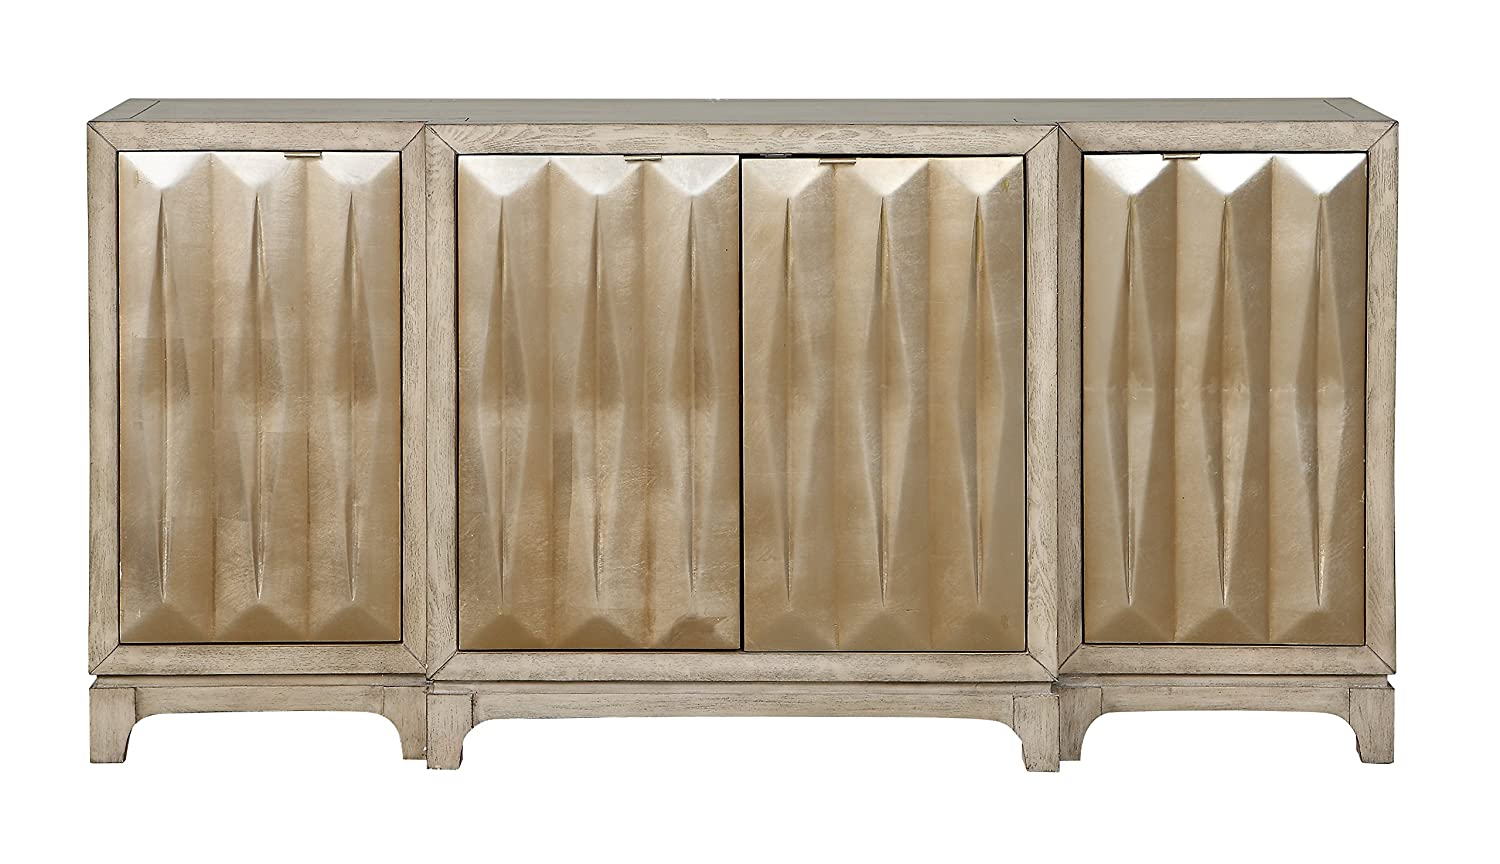 Treasure Trove Four Door Credenza, White and Gold